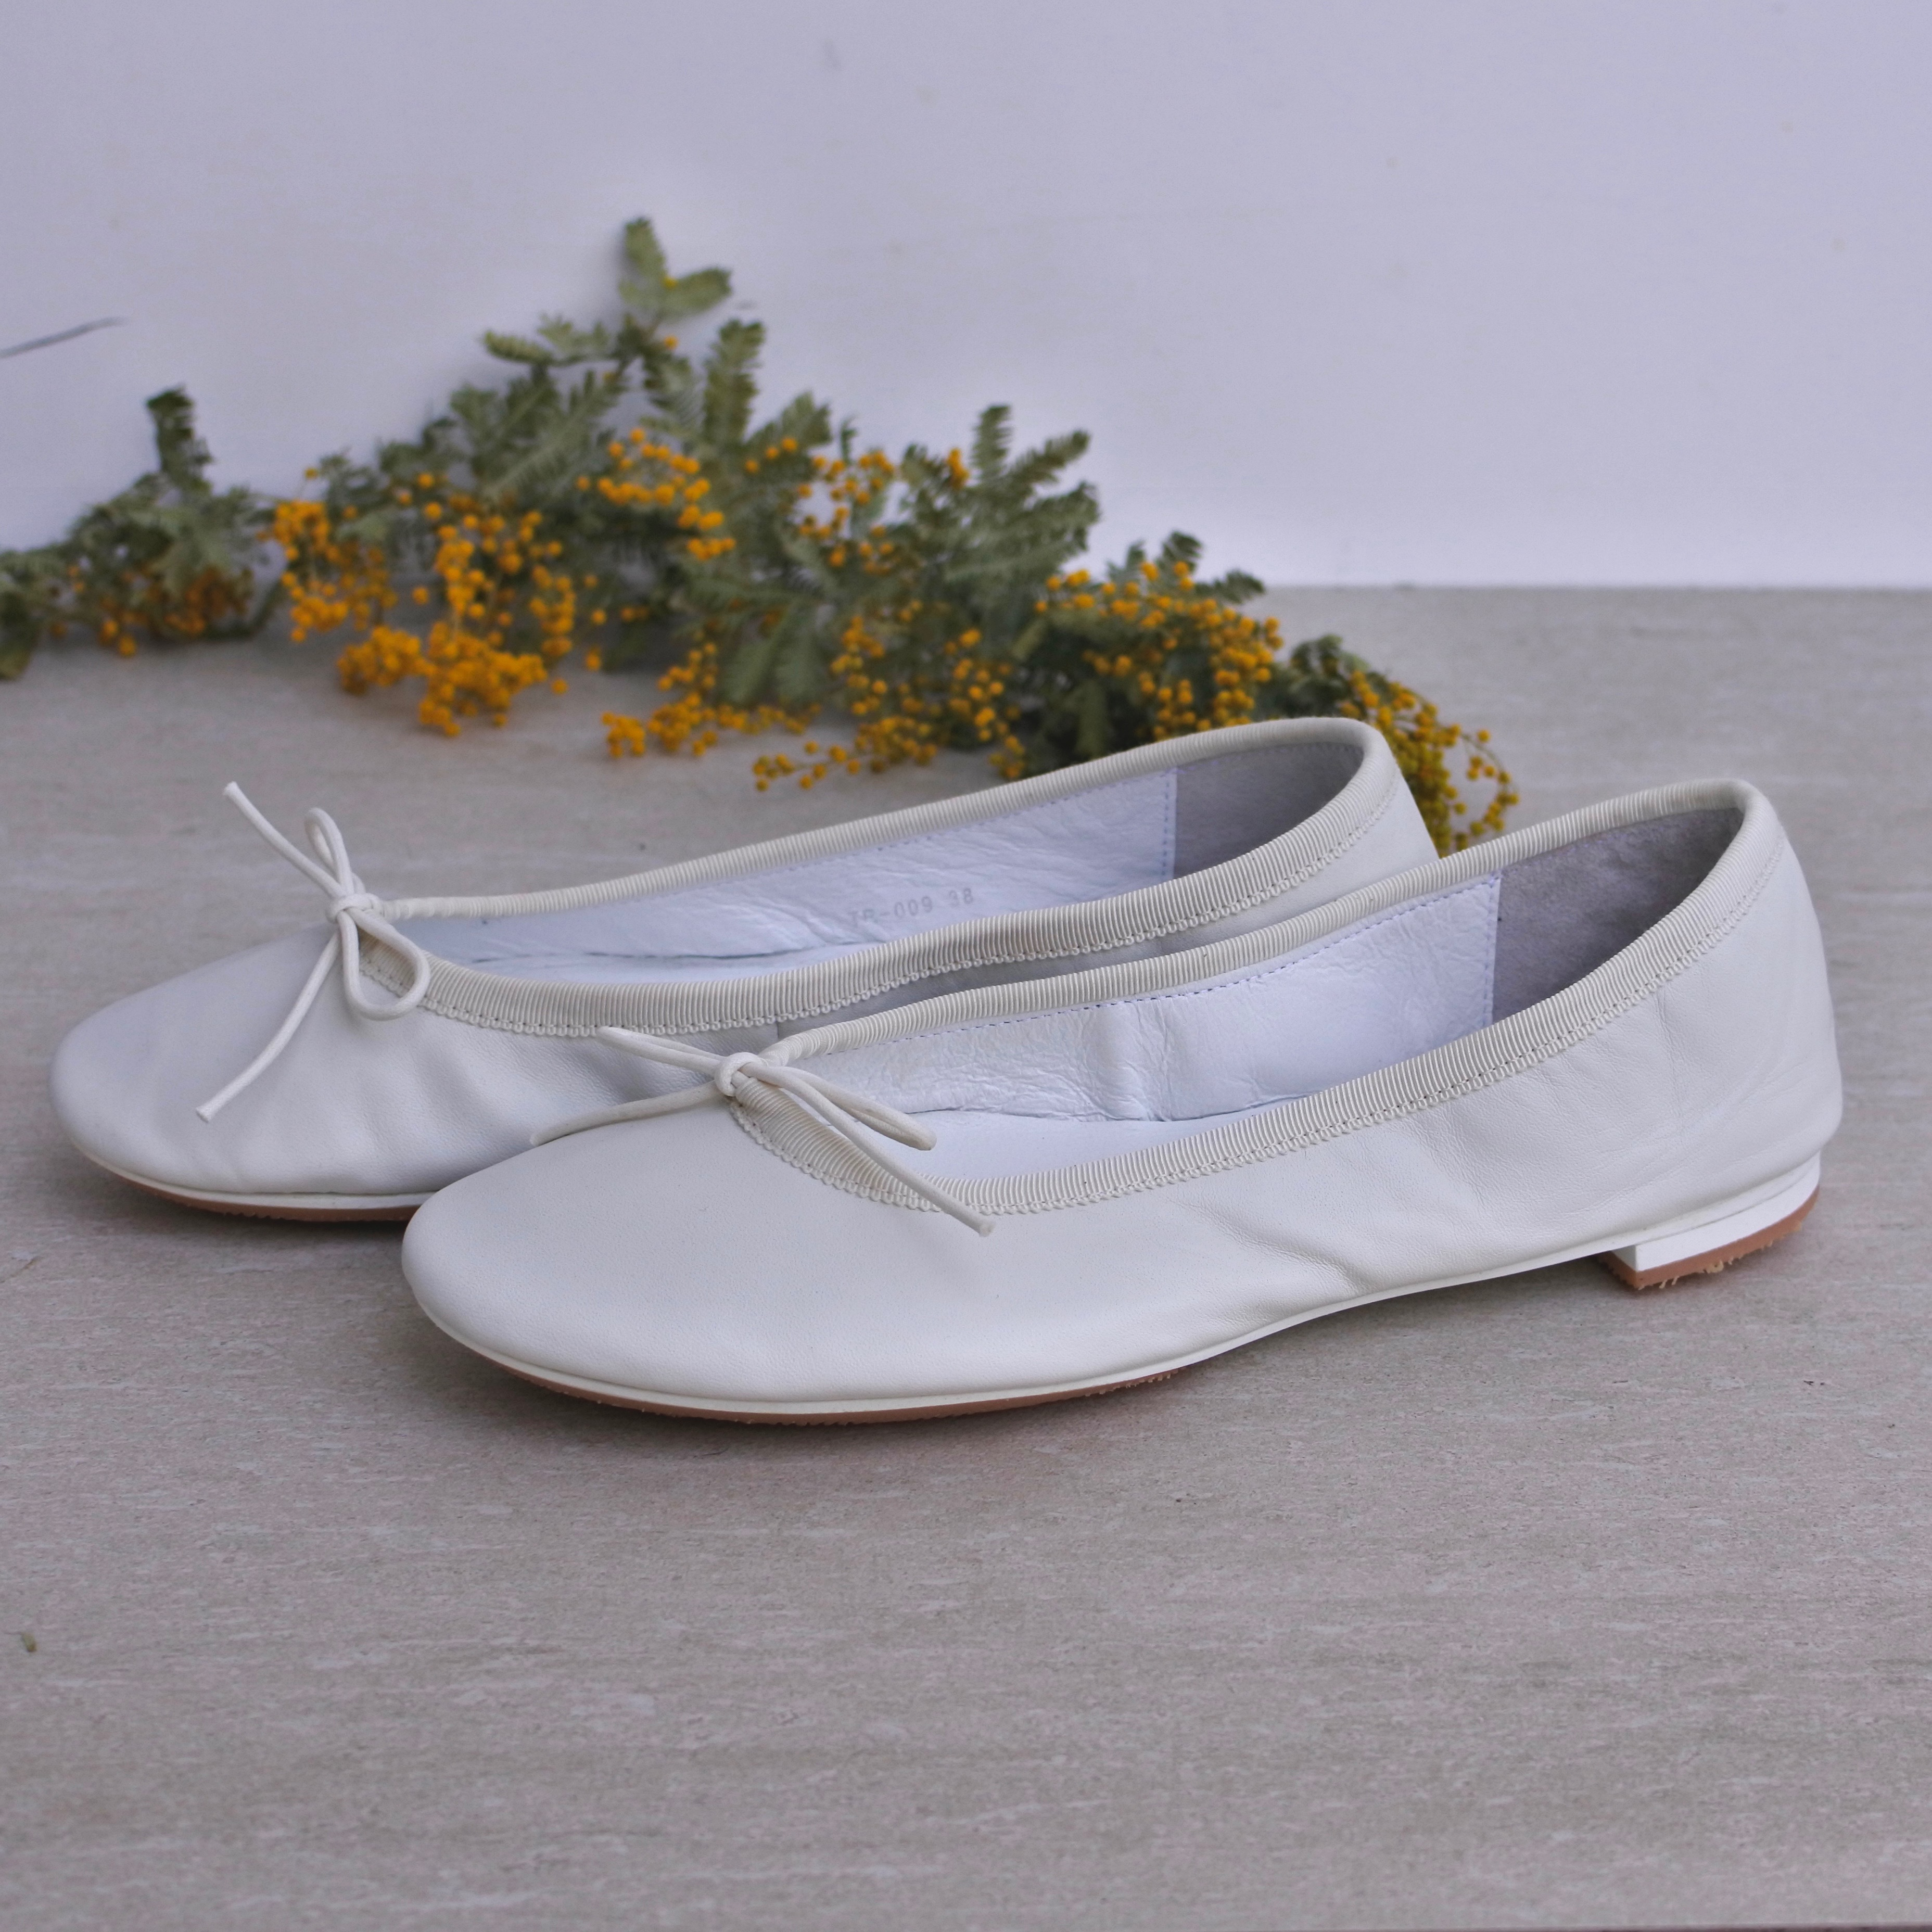 TRAVEL SHOES by chausser /フラットパンプス バレエシューズ